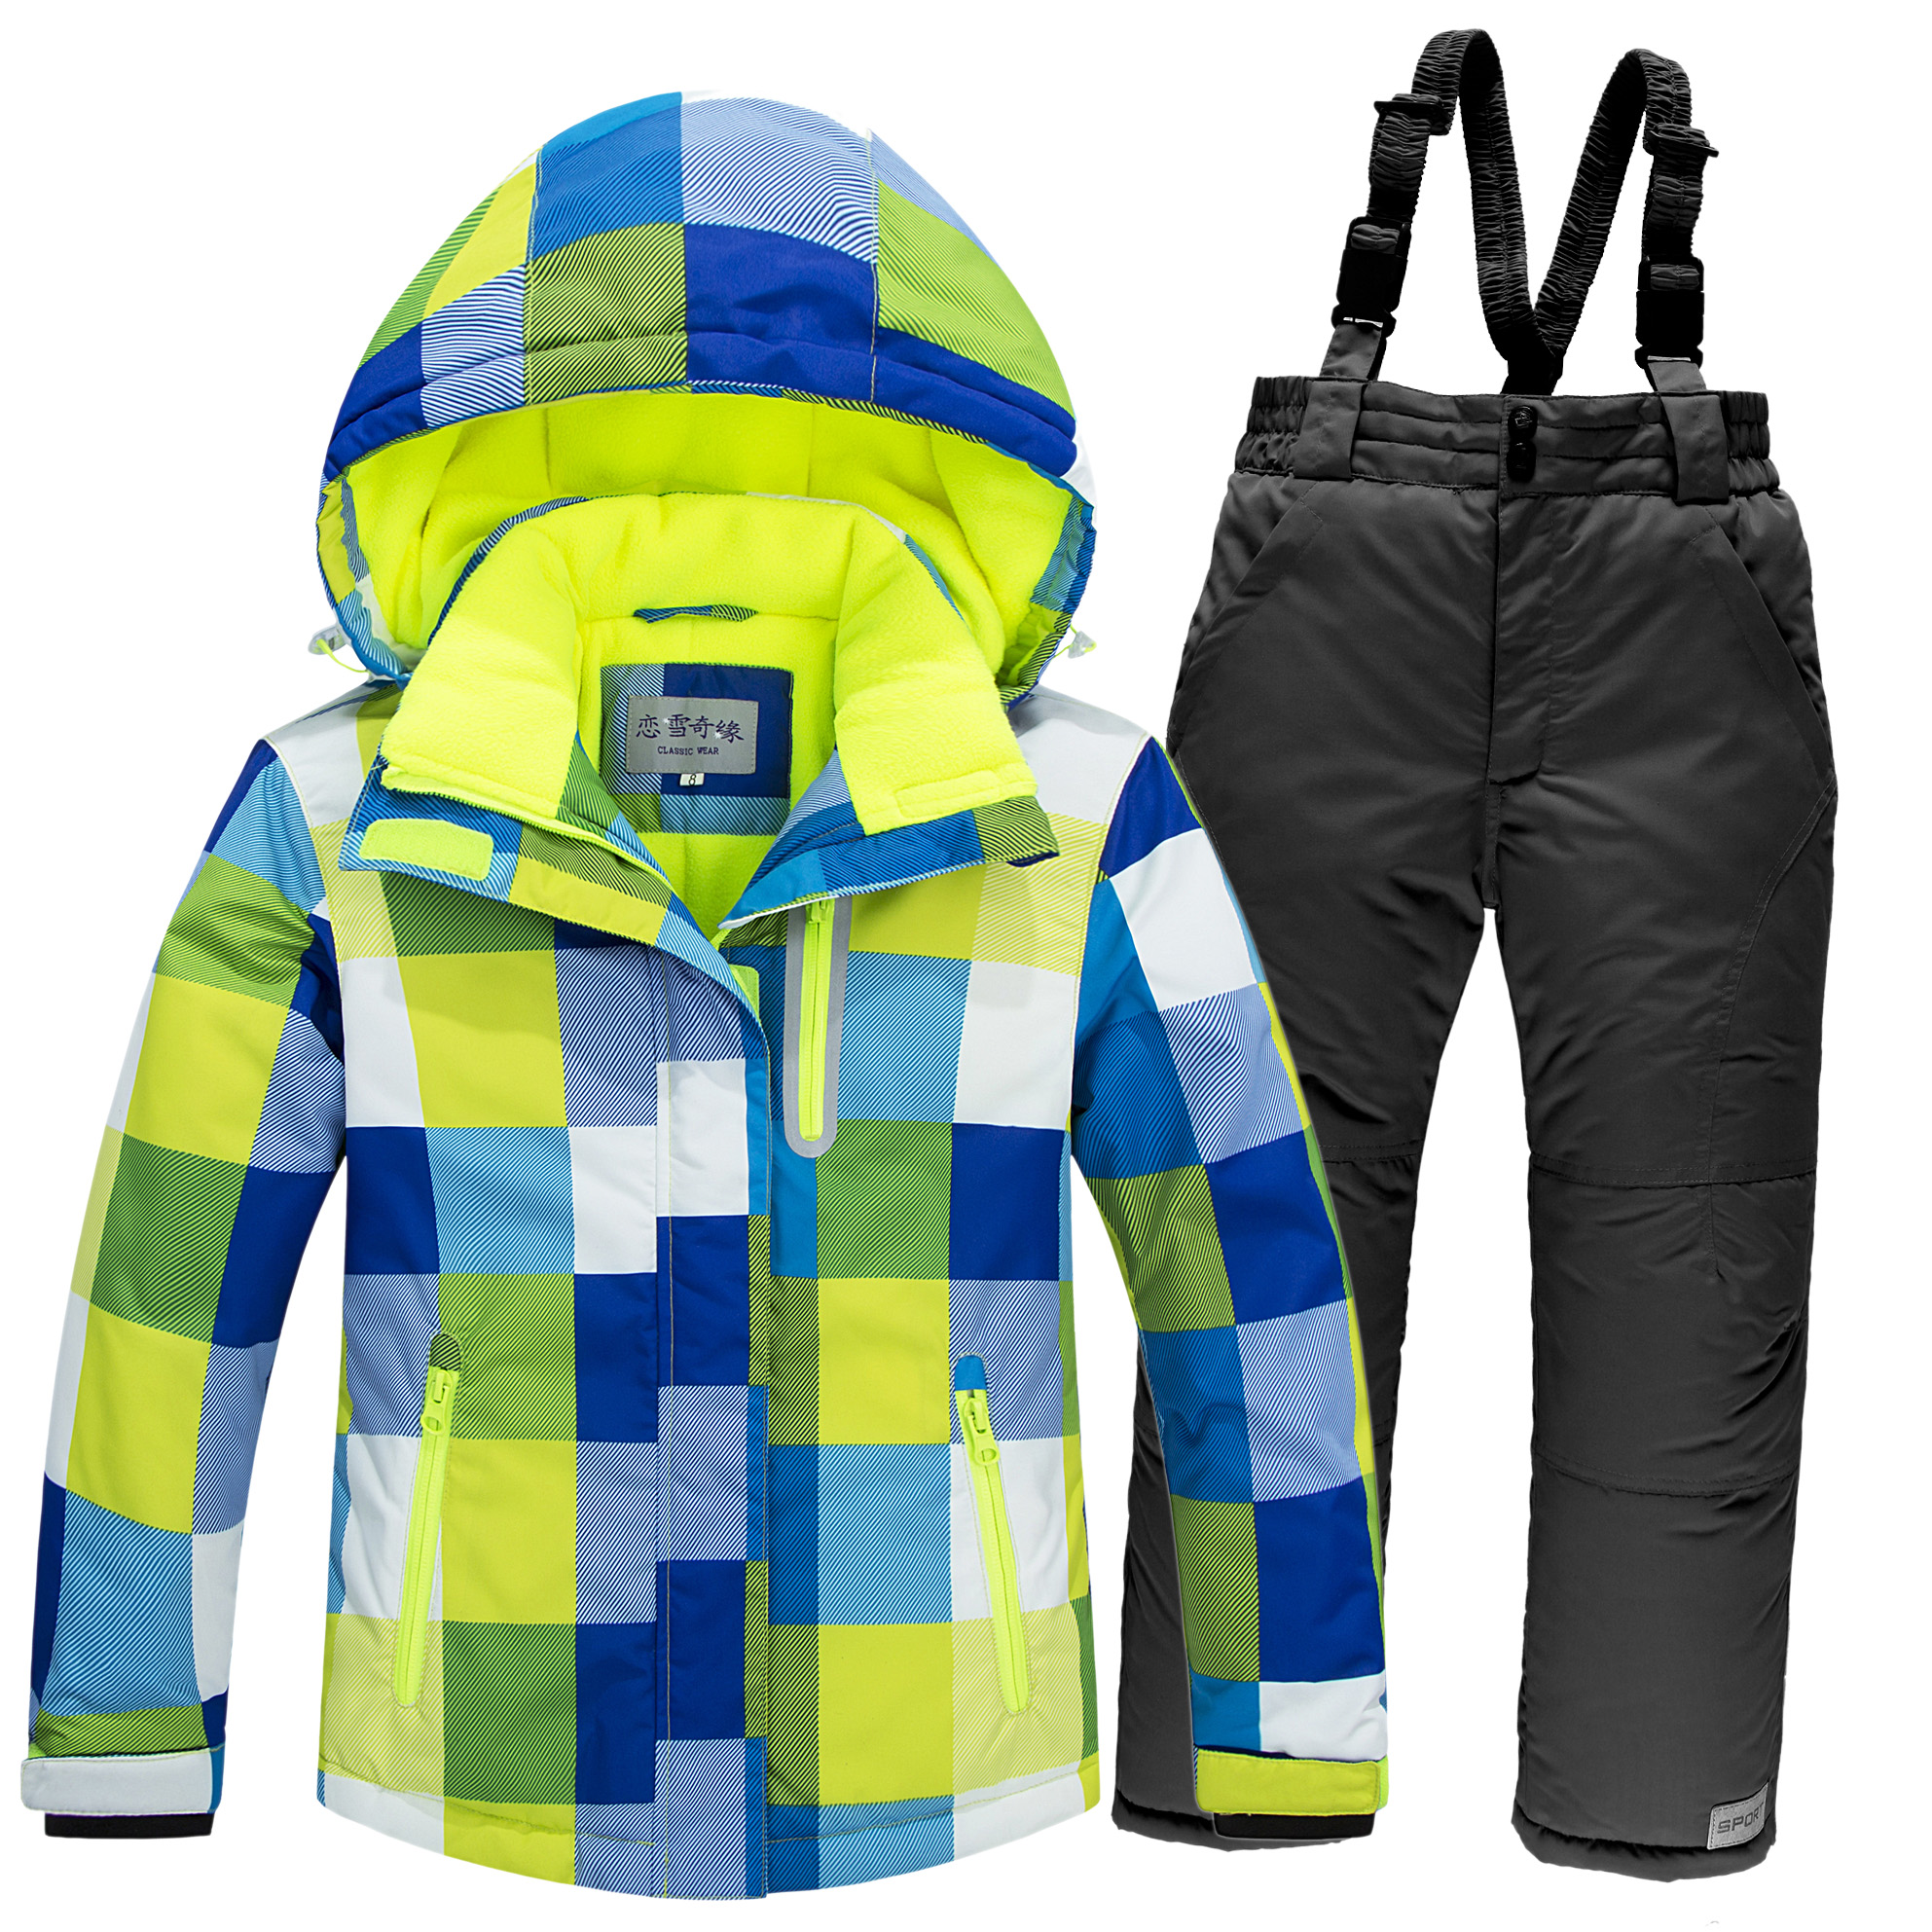 2017 Winter Children's Ski Suits Thicker Waterproof Boys And Girls Cold Outdoor Clothing Windproof Two Pieces Sets of Snow Wear цена